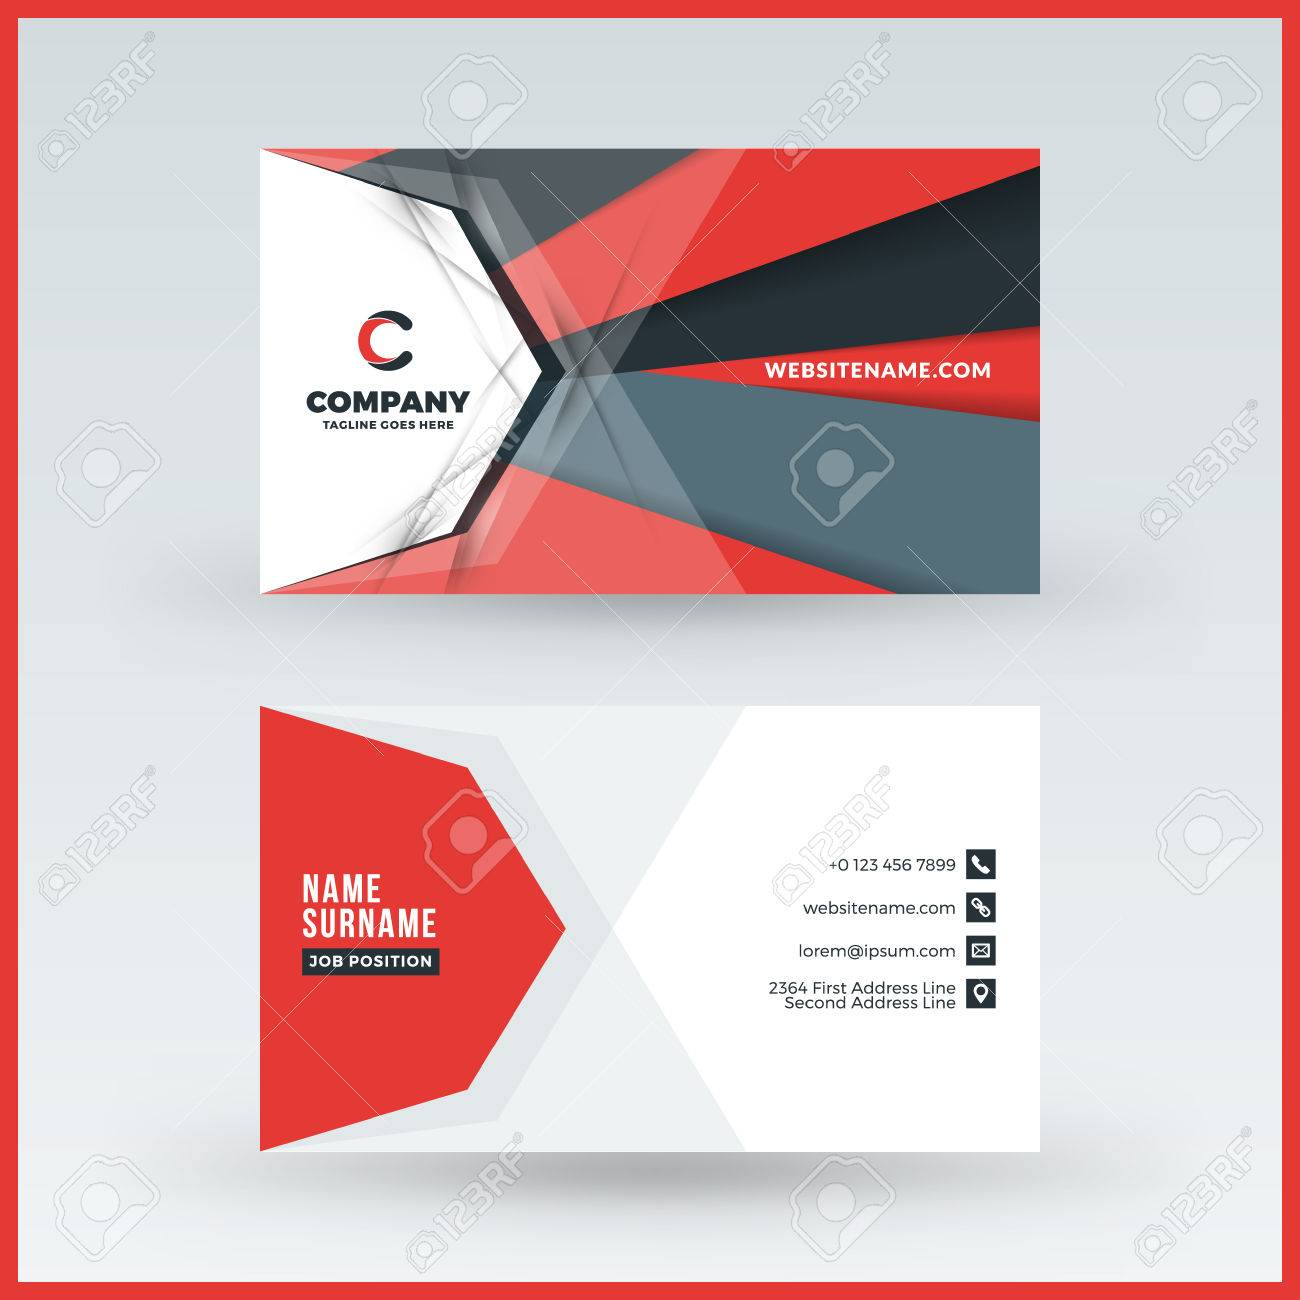 Double sided horizontal business card template vector mockup double sided horizontal business card template vector mockup illustration stationery design stock vector friedricerecipe Image collections